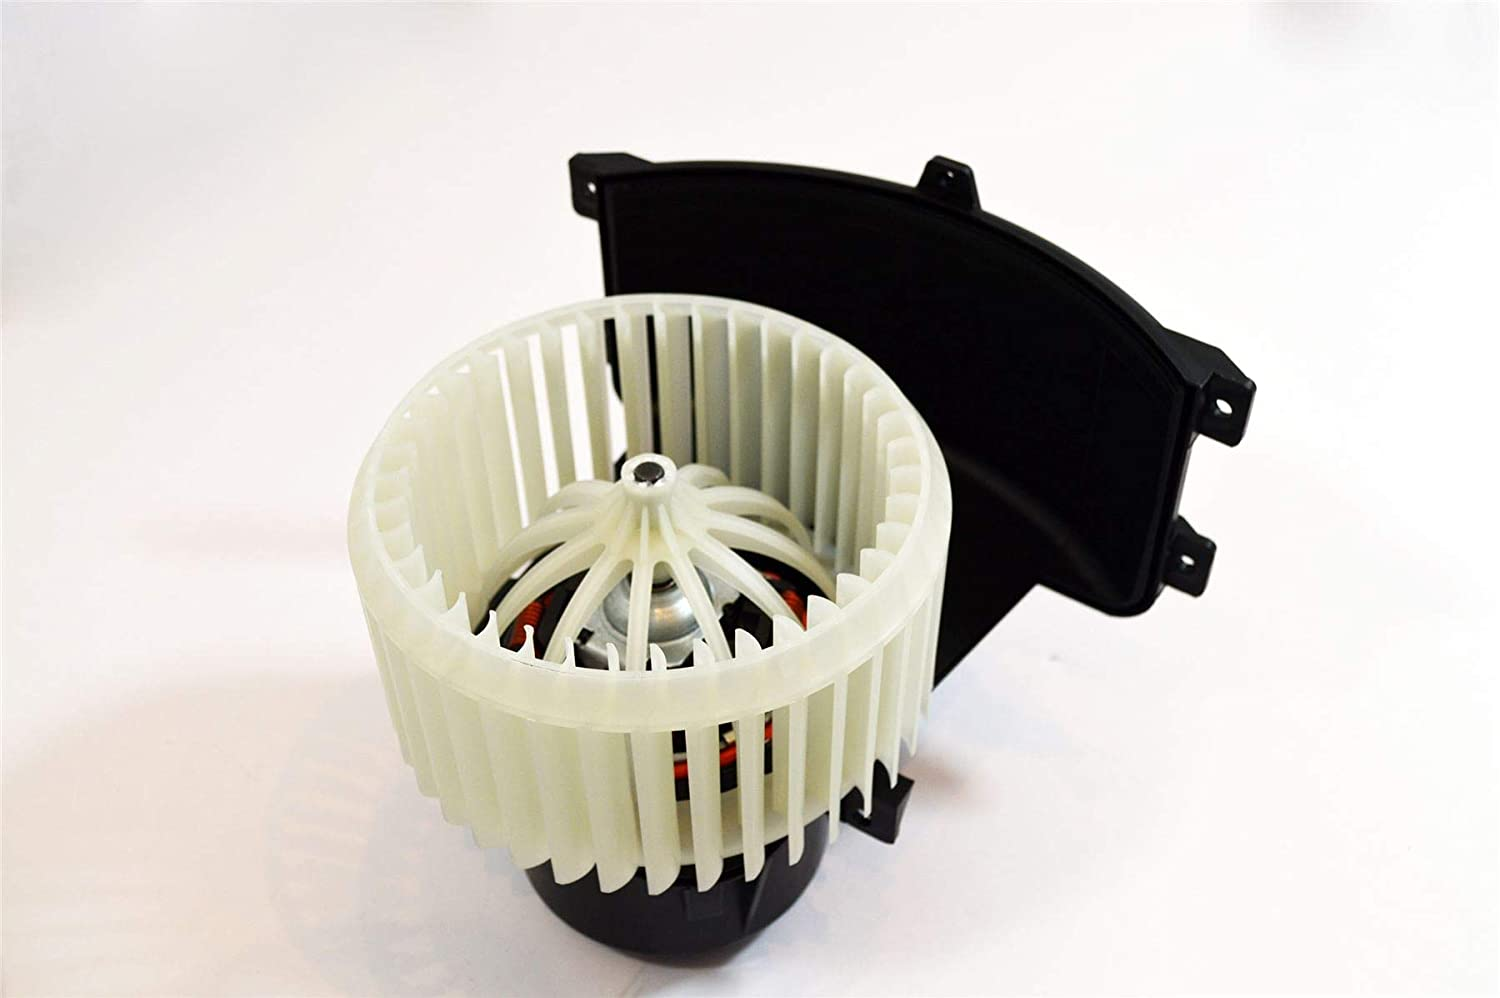 LSC 13335074 Heater Fan Blower Motor for Vehicles Without Air Conditioning NEW from LSC